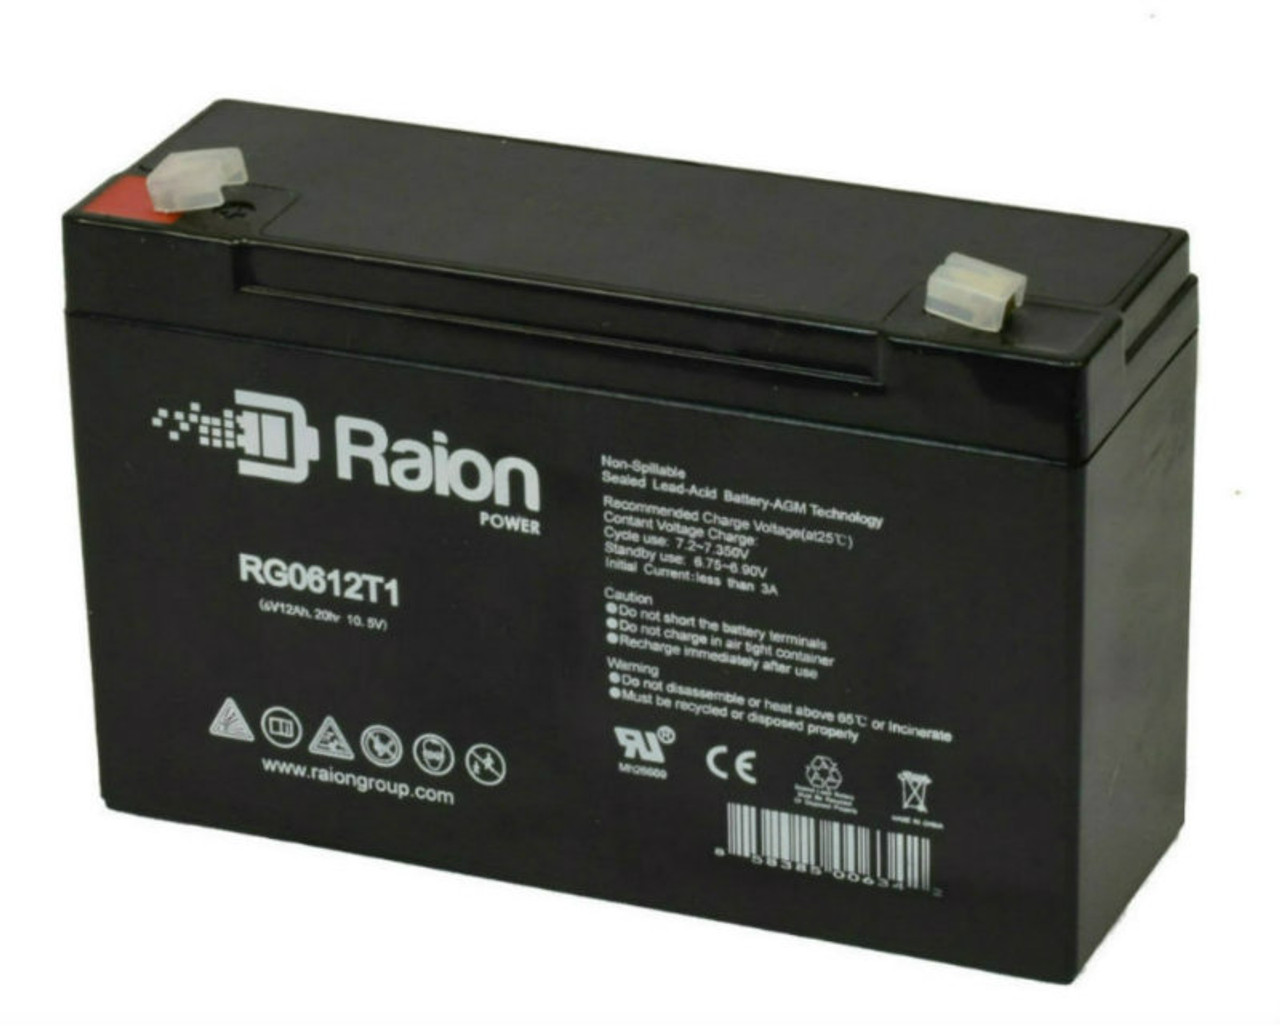 Raion Power RG06120T1 Replacement Battery Pack for Sure-Lites UMB5 emergency light